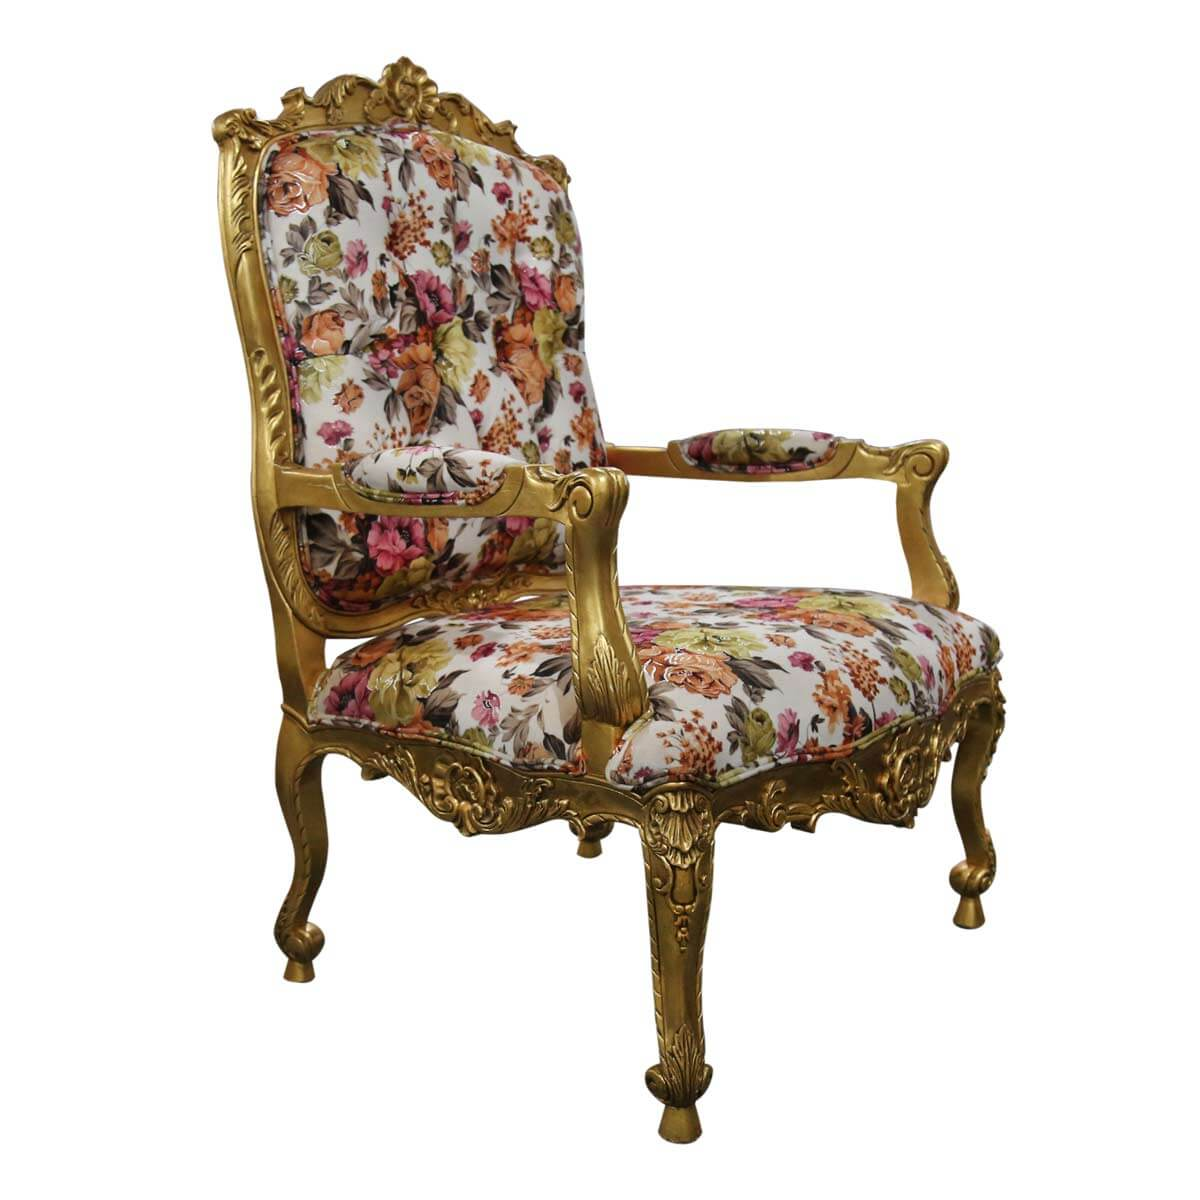 Oldbury Handcrafted Mahogany Wood Royal Floral Upholstered Arm Chair